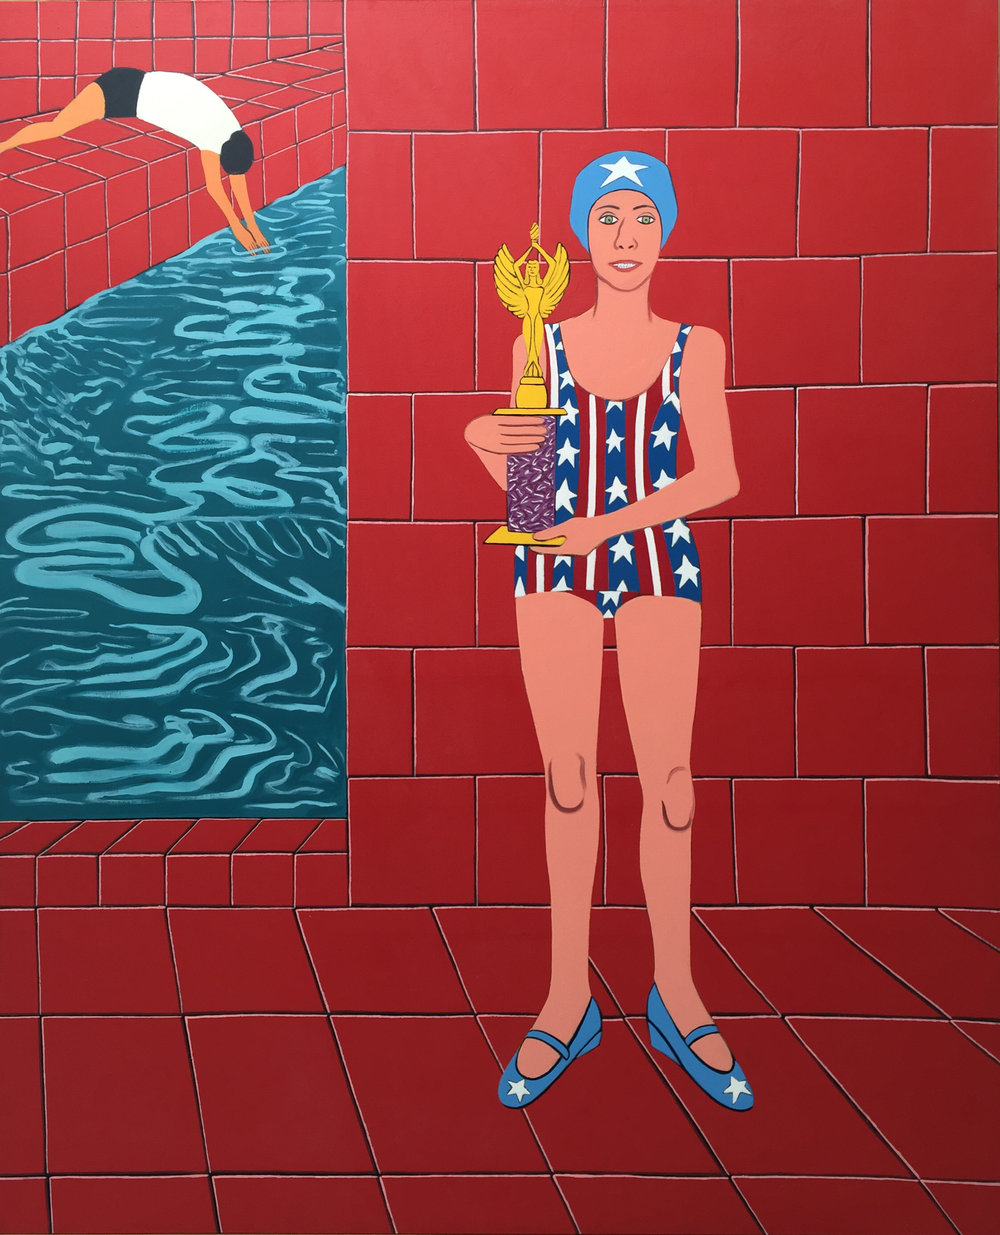 JOAN BROWN, The Bicentennial Champion, 1976, oil and enamel on canvas, 96 x 78 inches